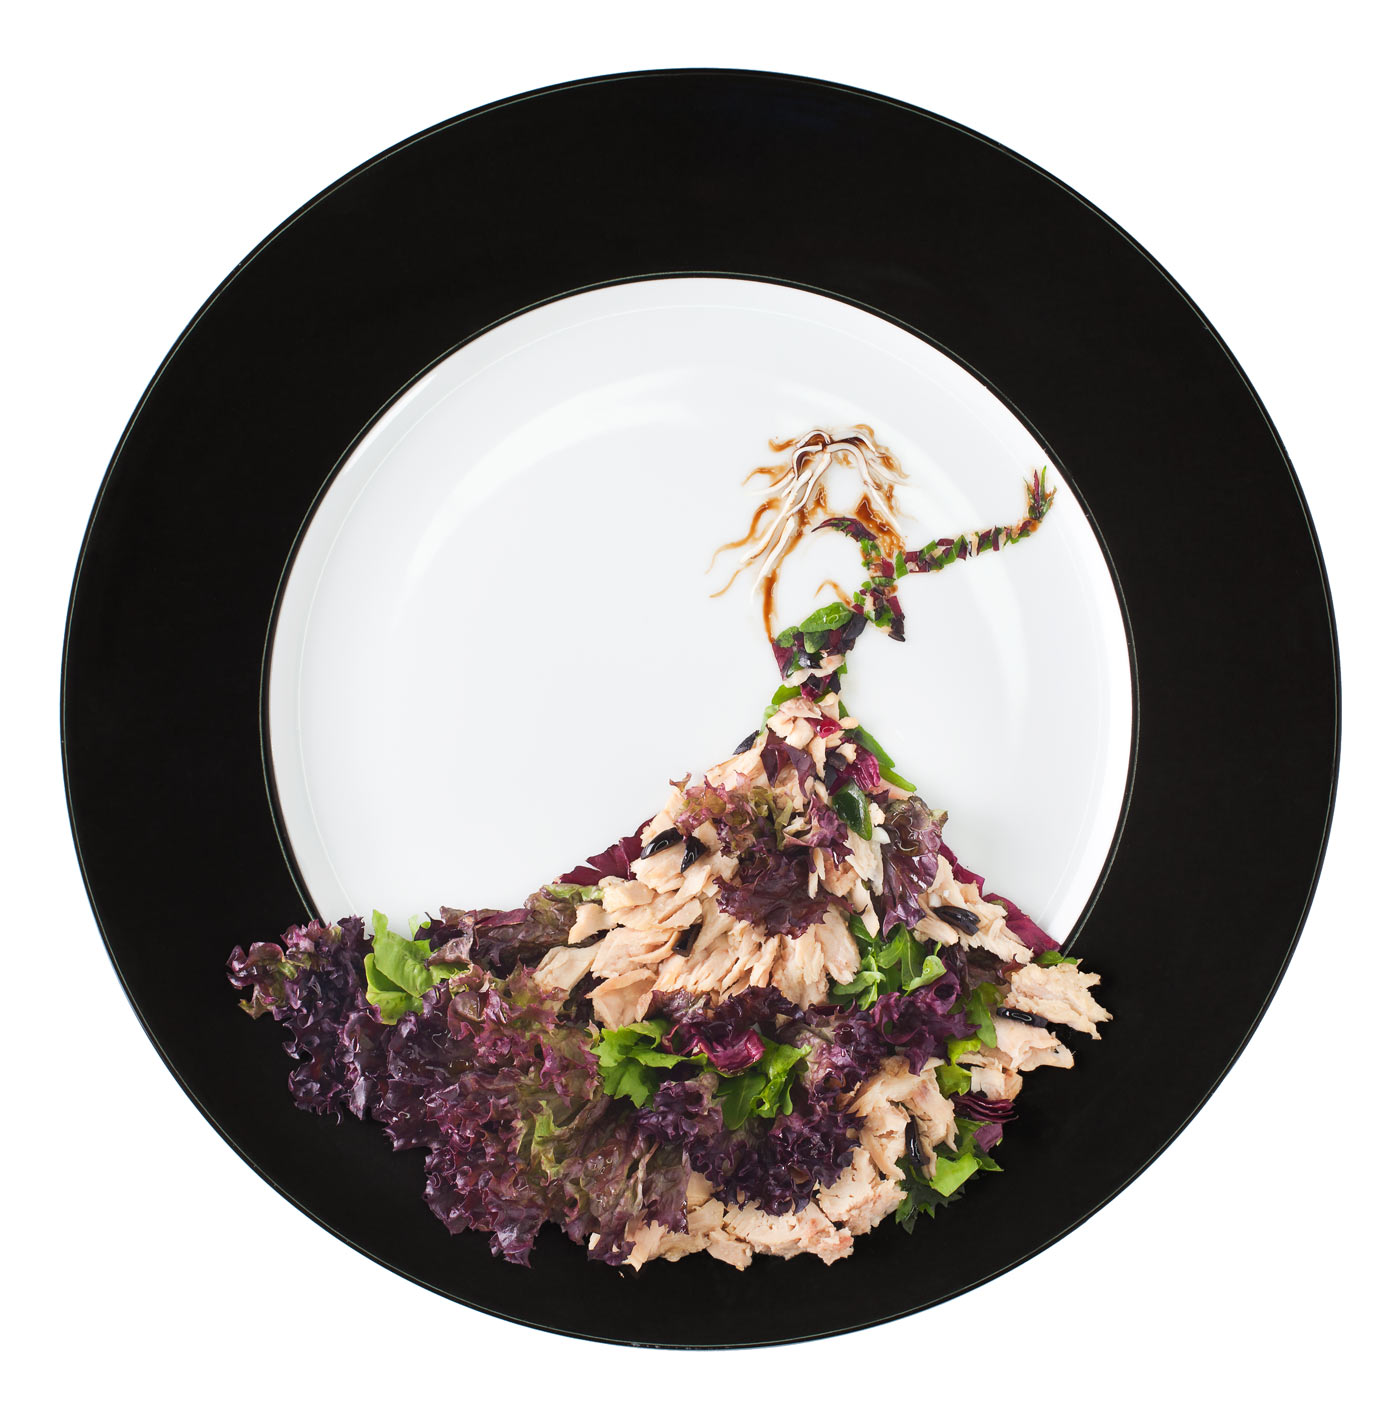 Fashion food, tuna salad in form of the Jean Paul Gaultier camouflage dress